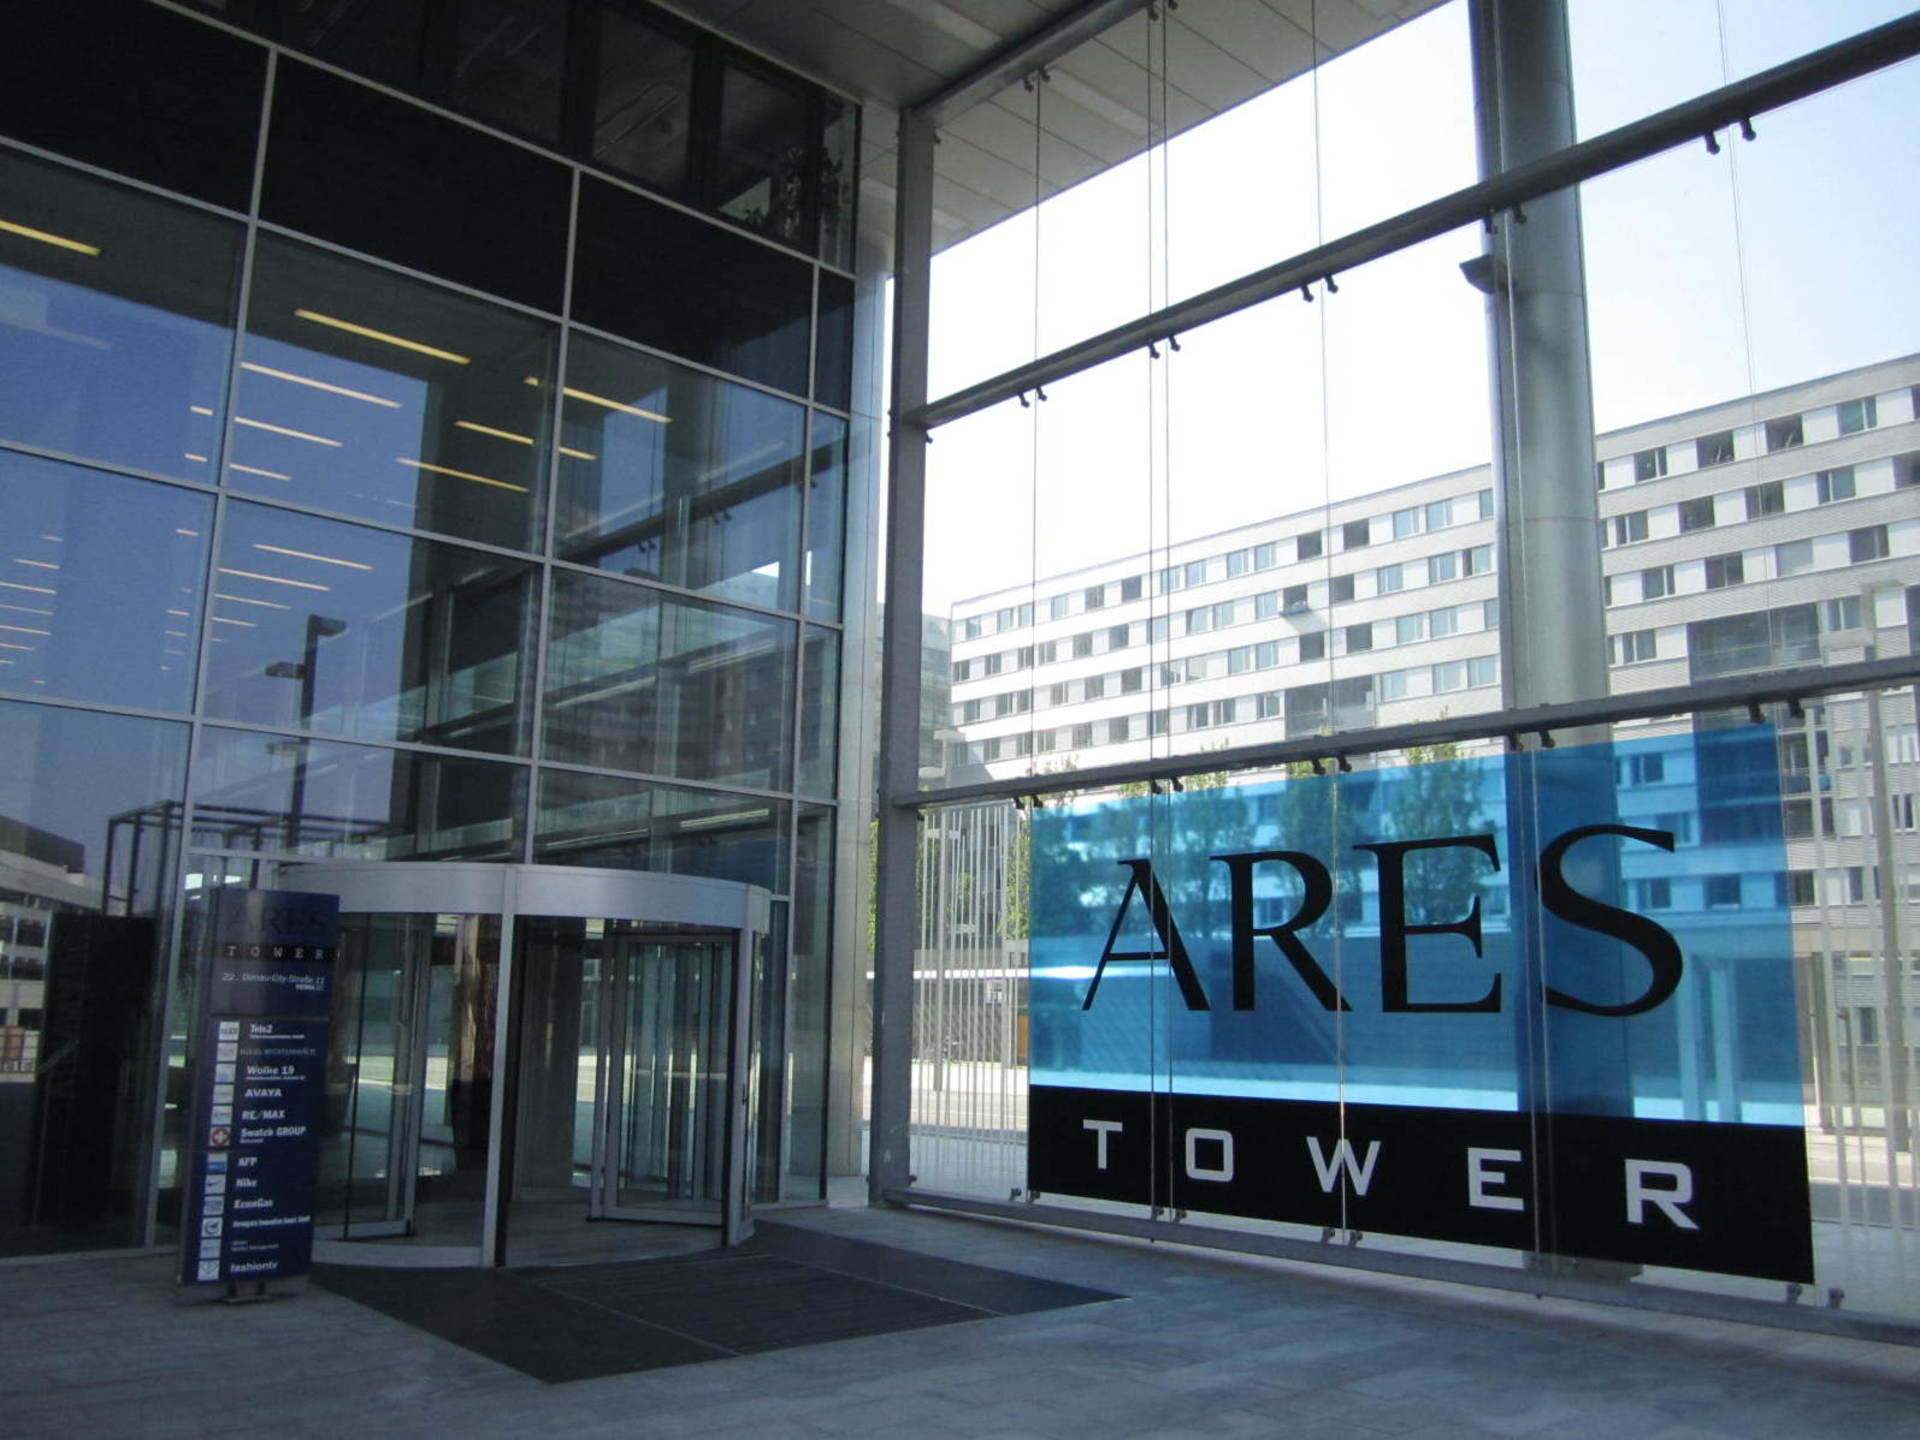 Ares Tower - Donau-City-Straße 11, 1220 Wien